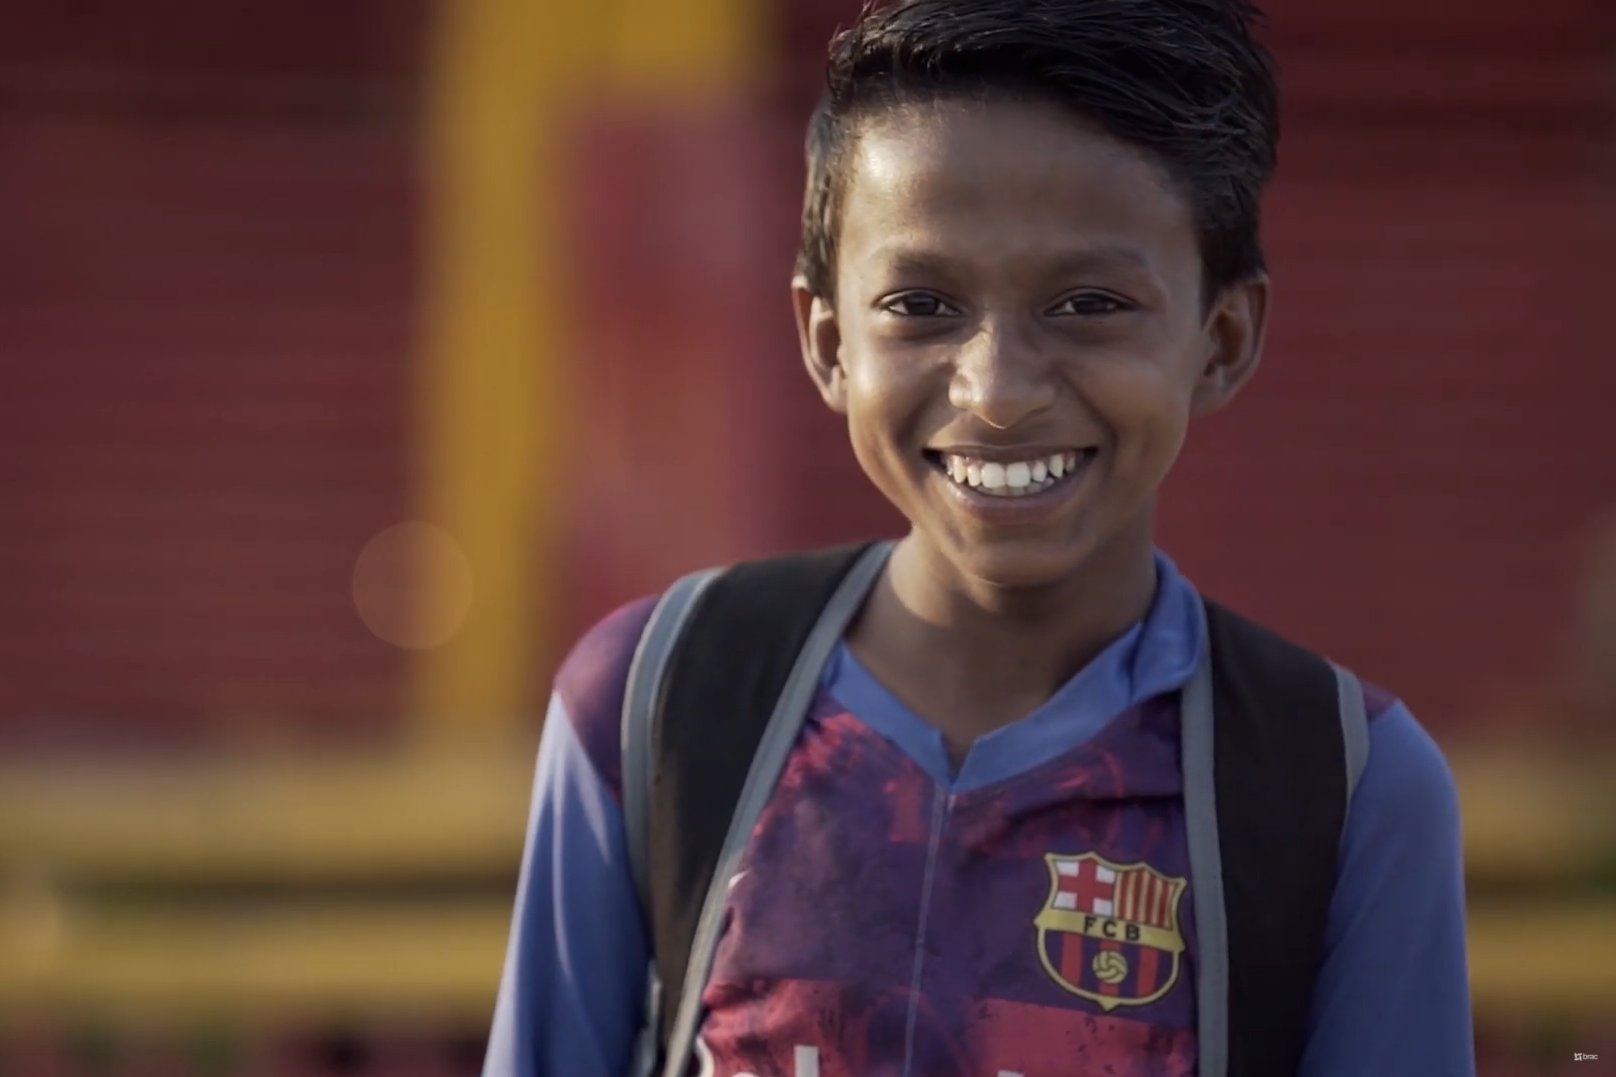 Video: Every child deserves a childhood